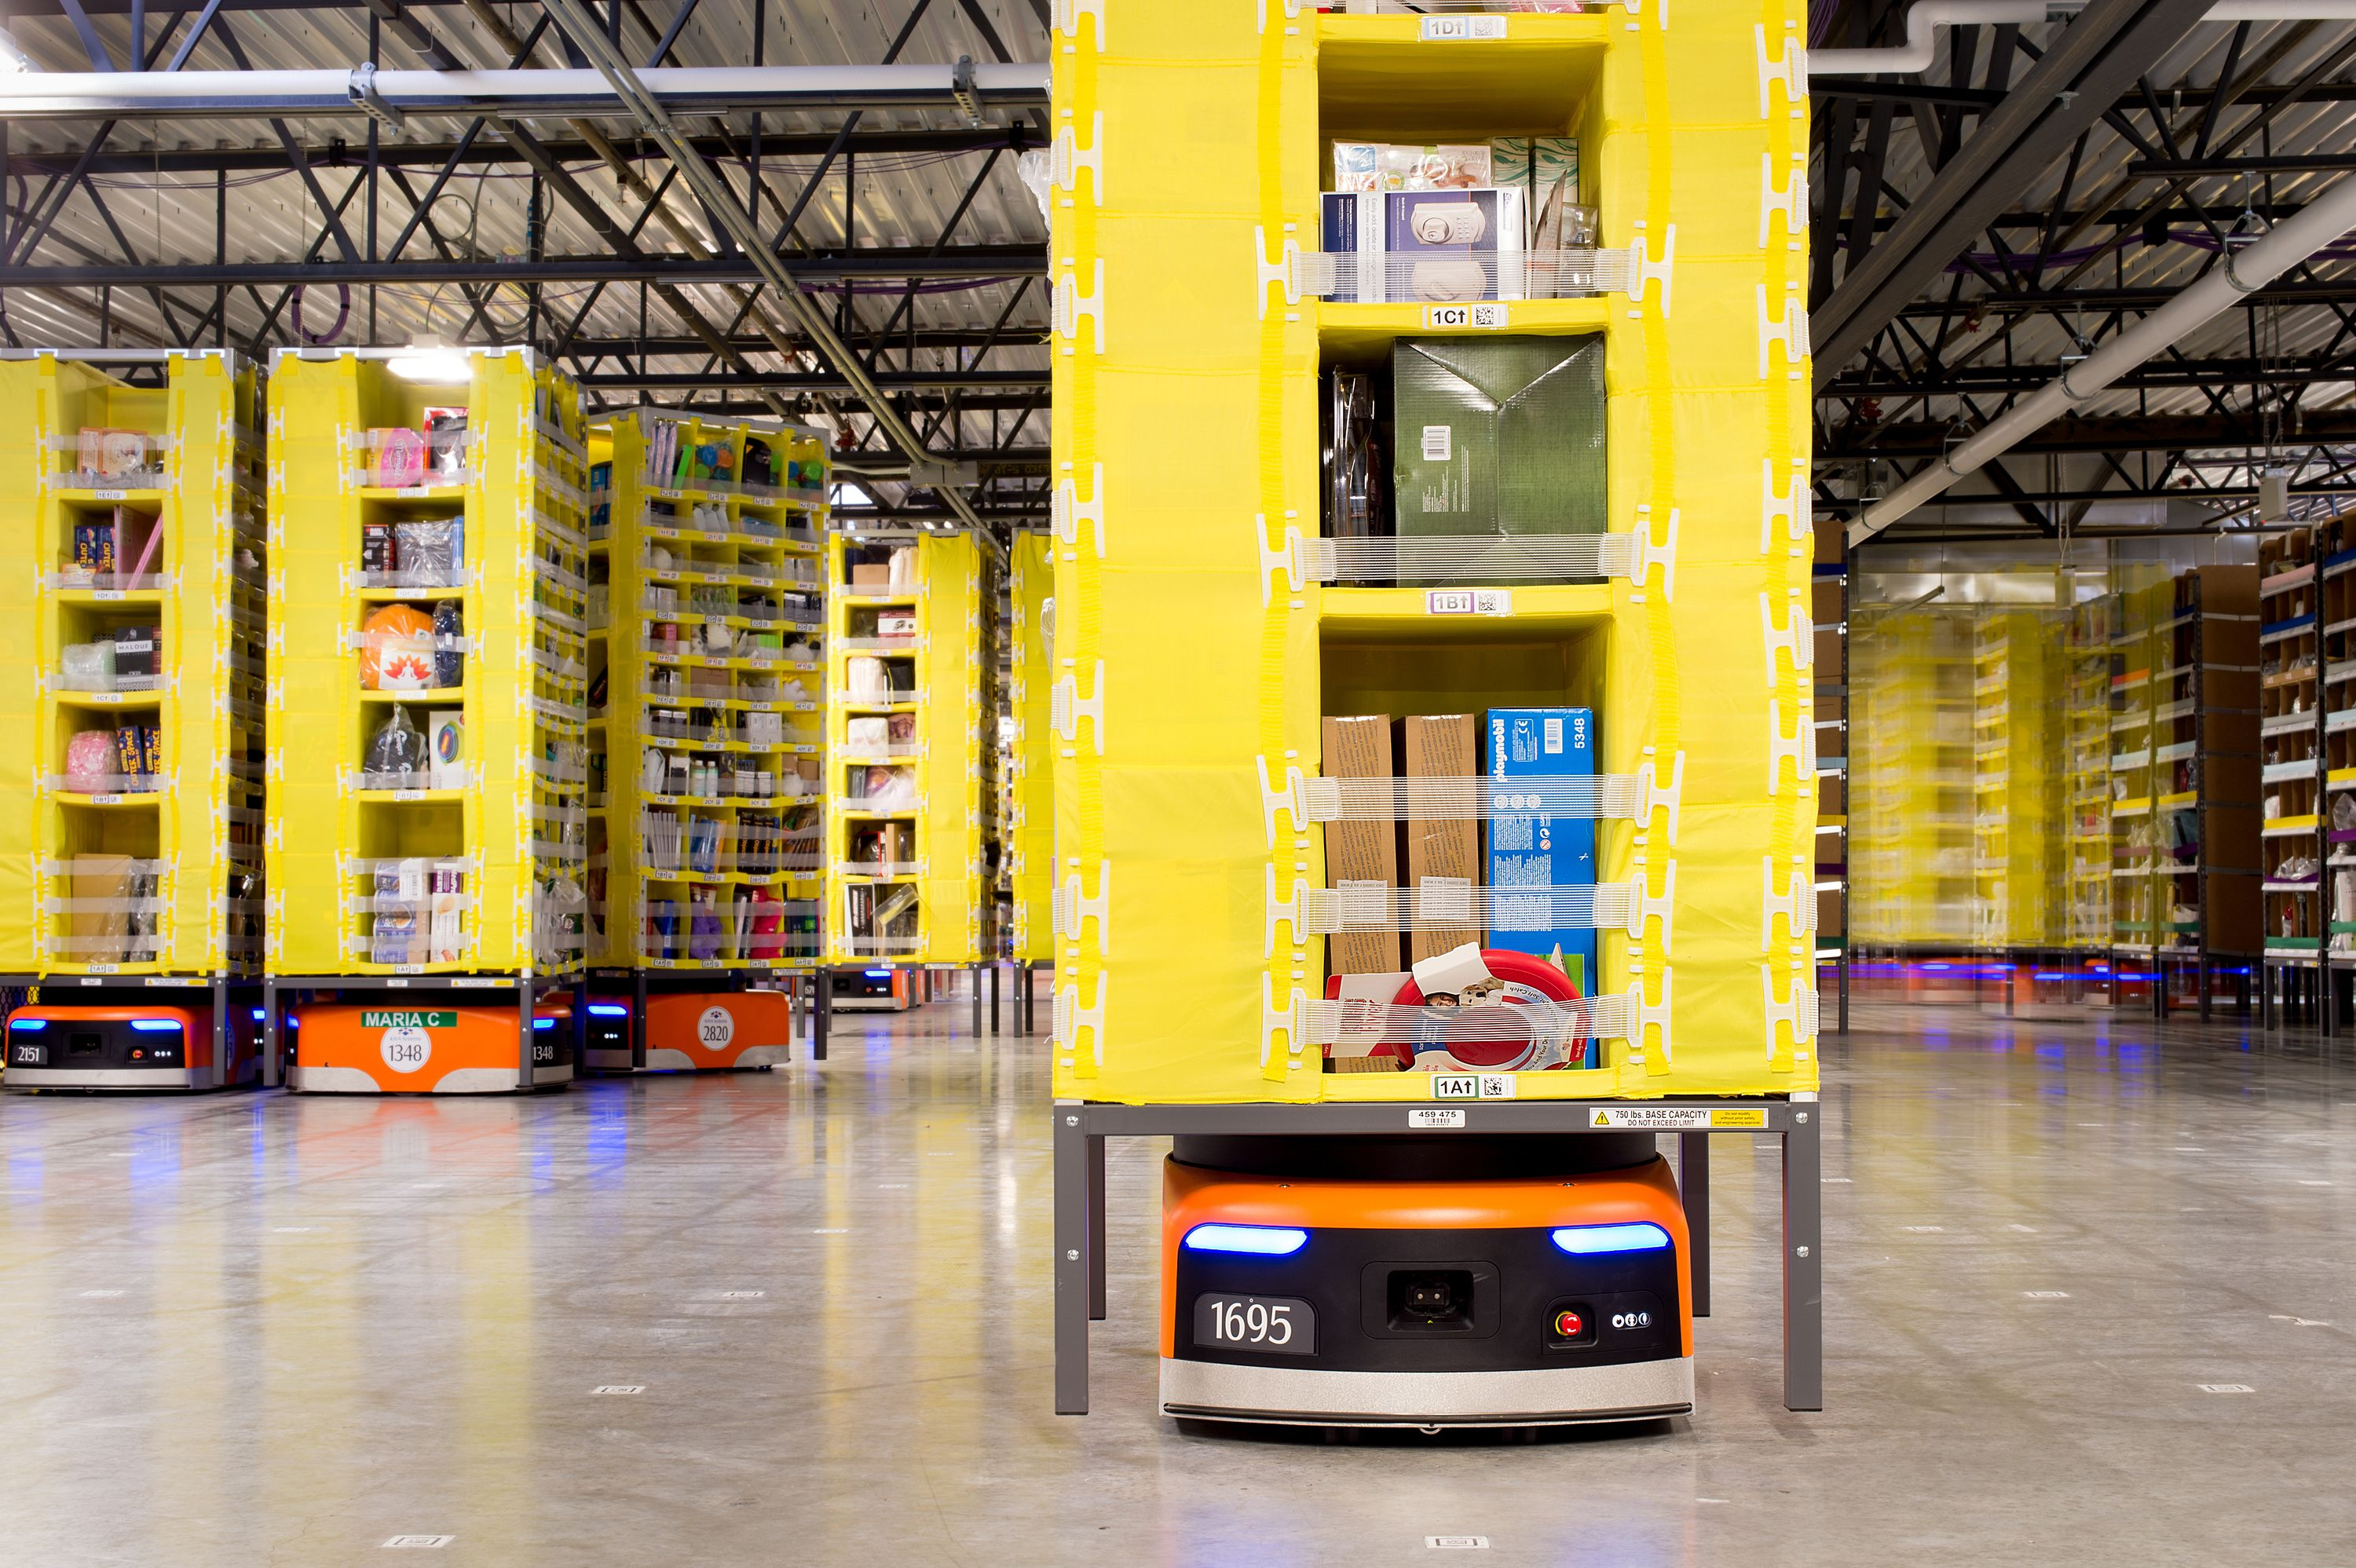 Mobile automation: Autonomous Mobile Robots (AMRs), Automated Guided Vehicles (AGVs)